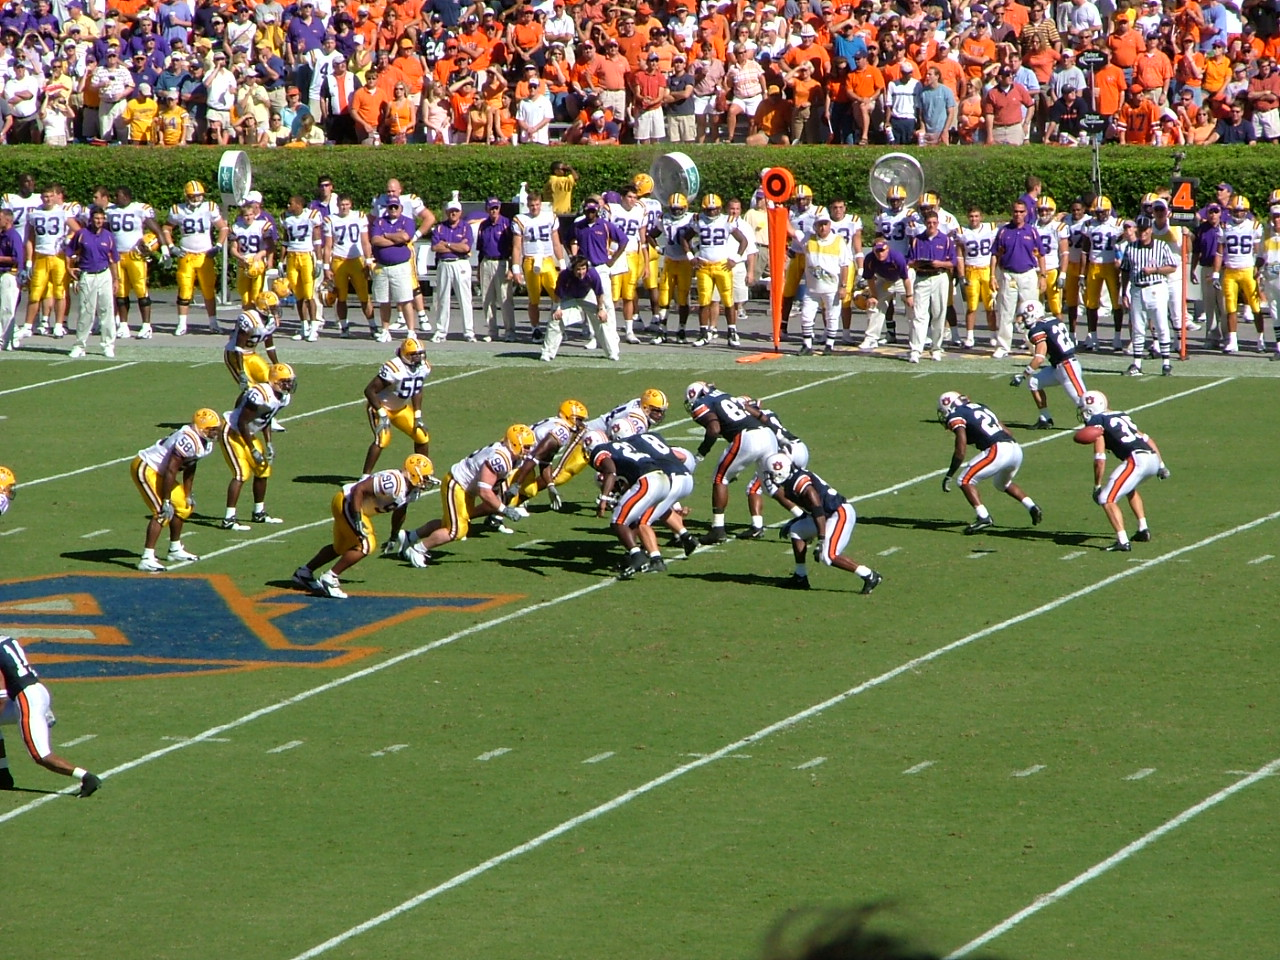 Auburn and LSU going at it